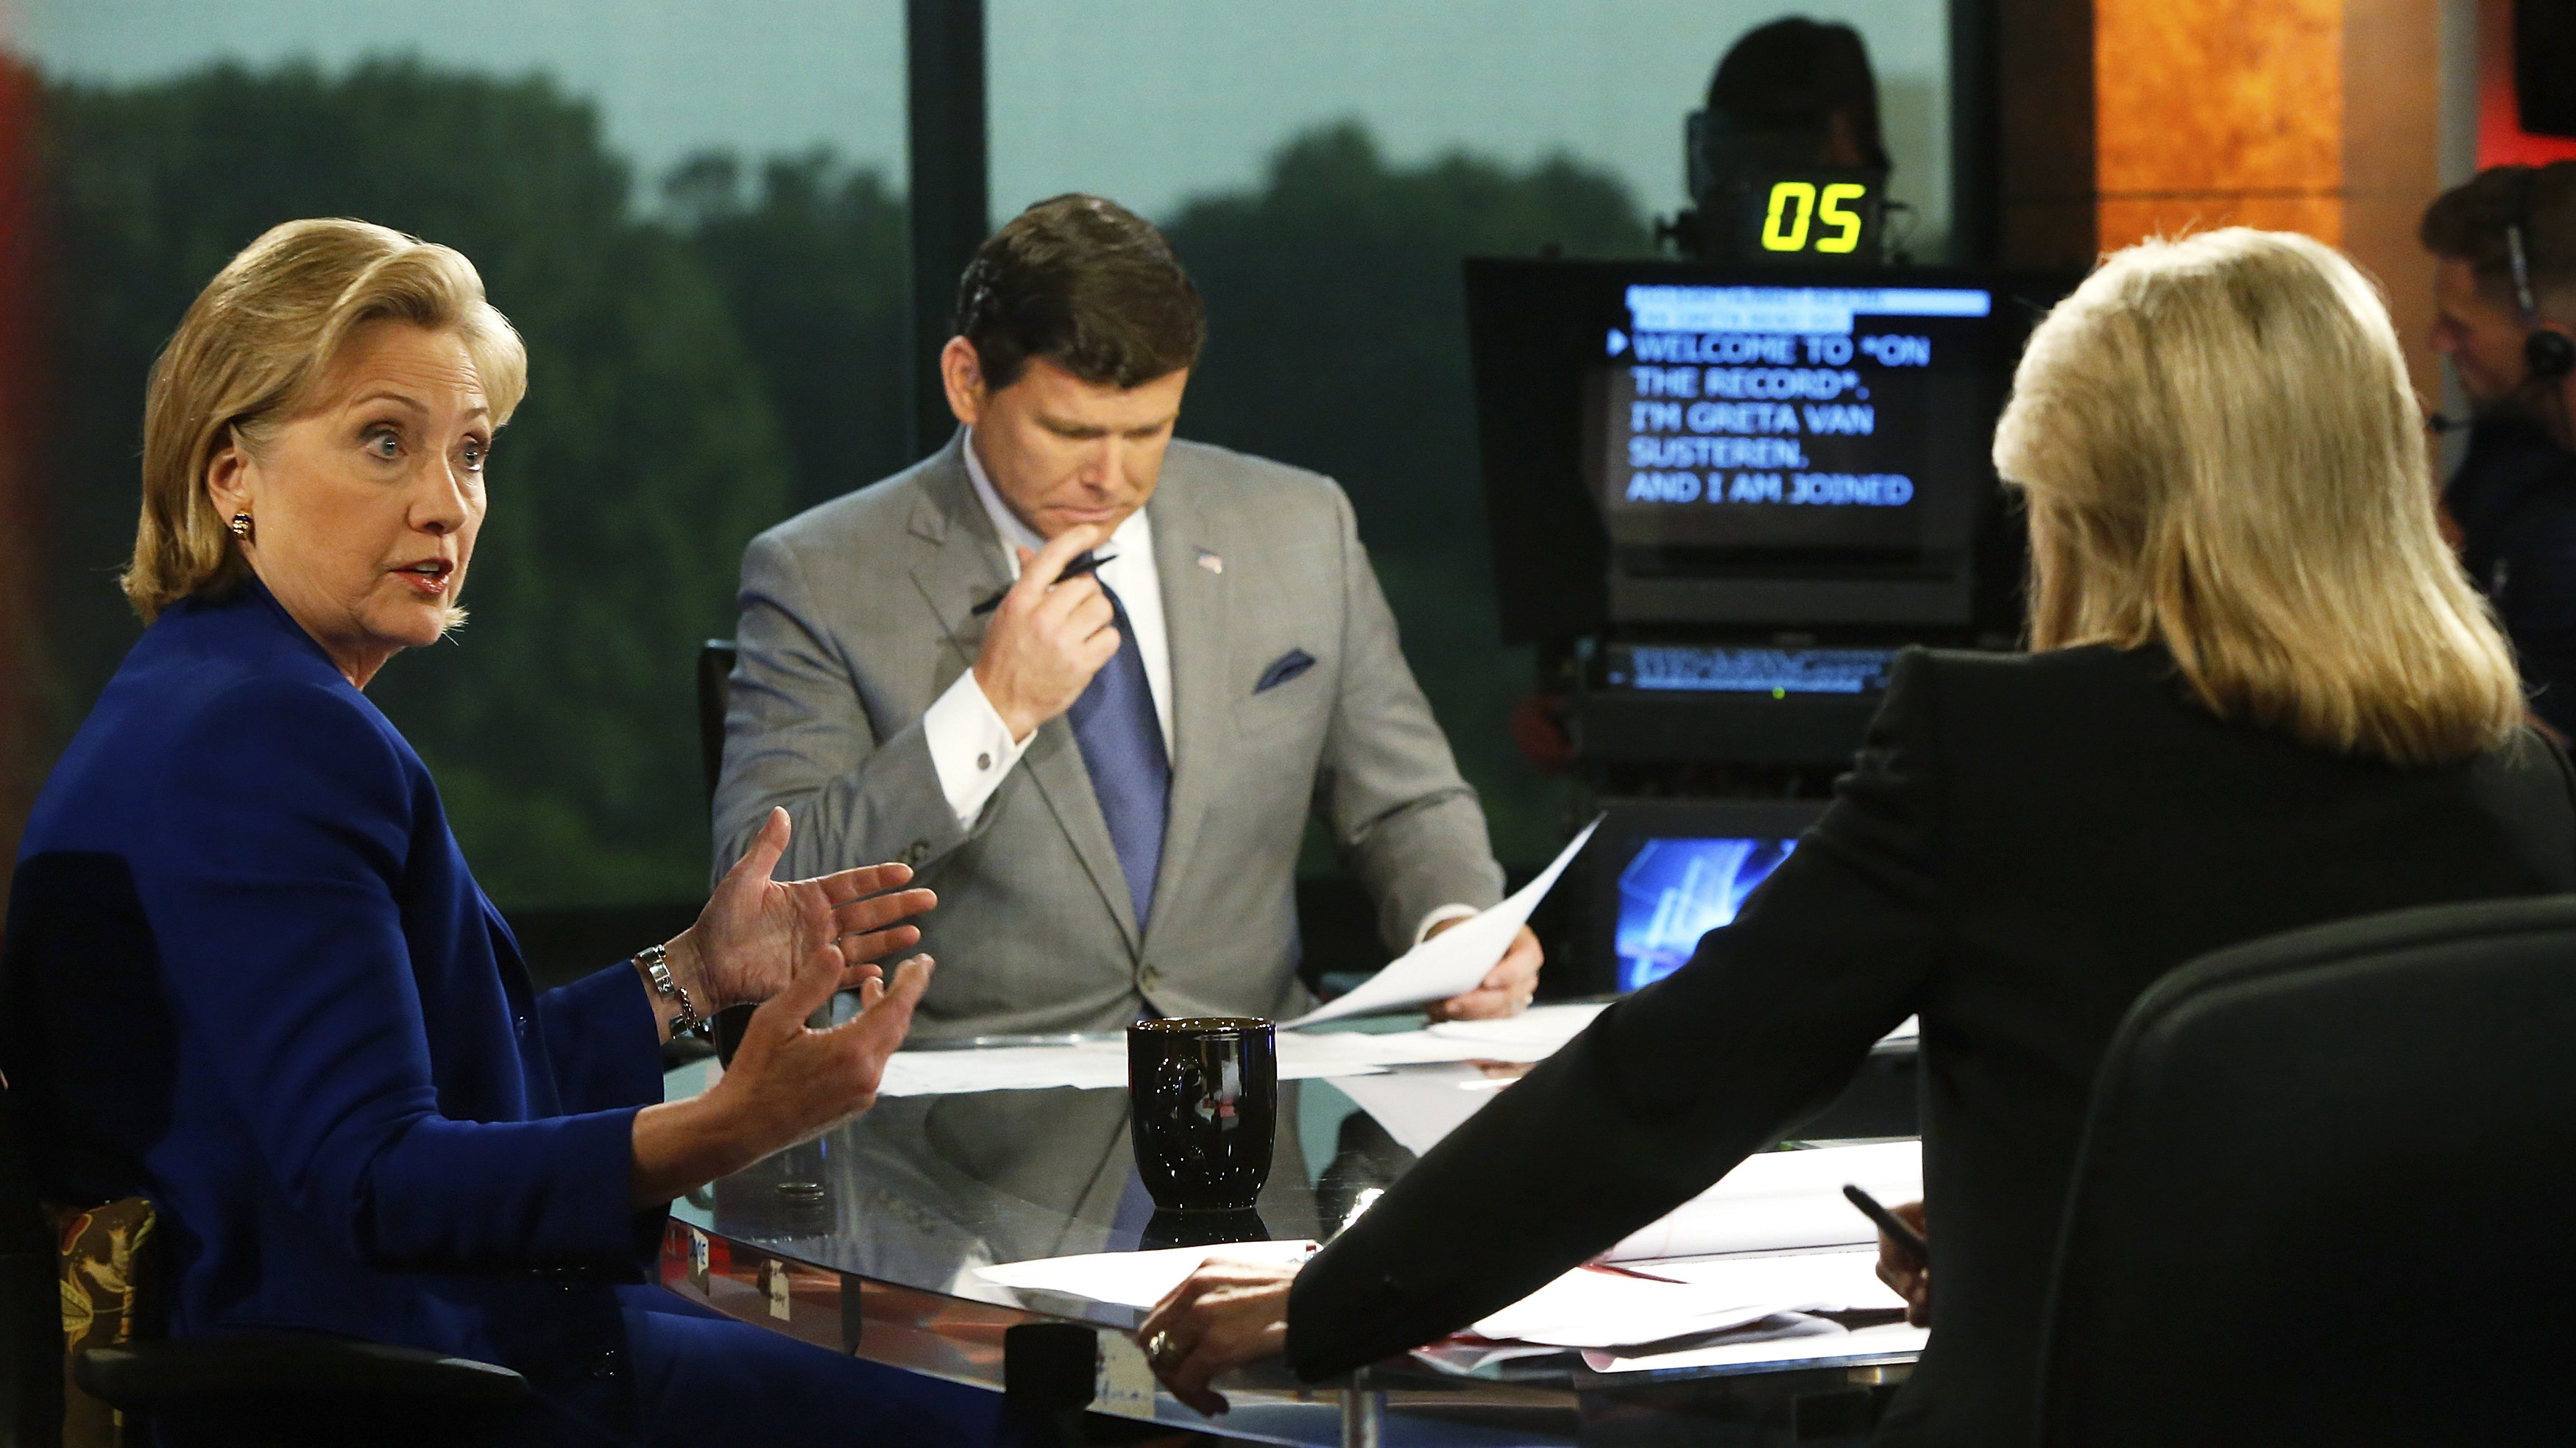 Former U.S. Secretary of State Hillary Clinton (L) chats during a commercial break during an interview with Greta Van Susteren (R) and Bret Baier at the FOX News Channel studio in Washington June 17, 2014.